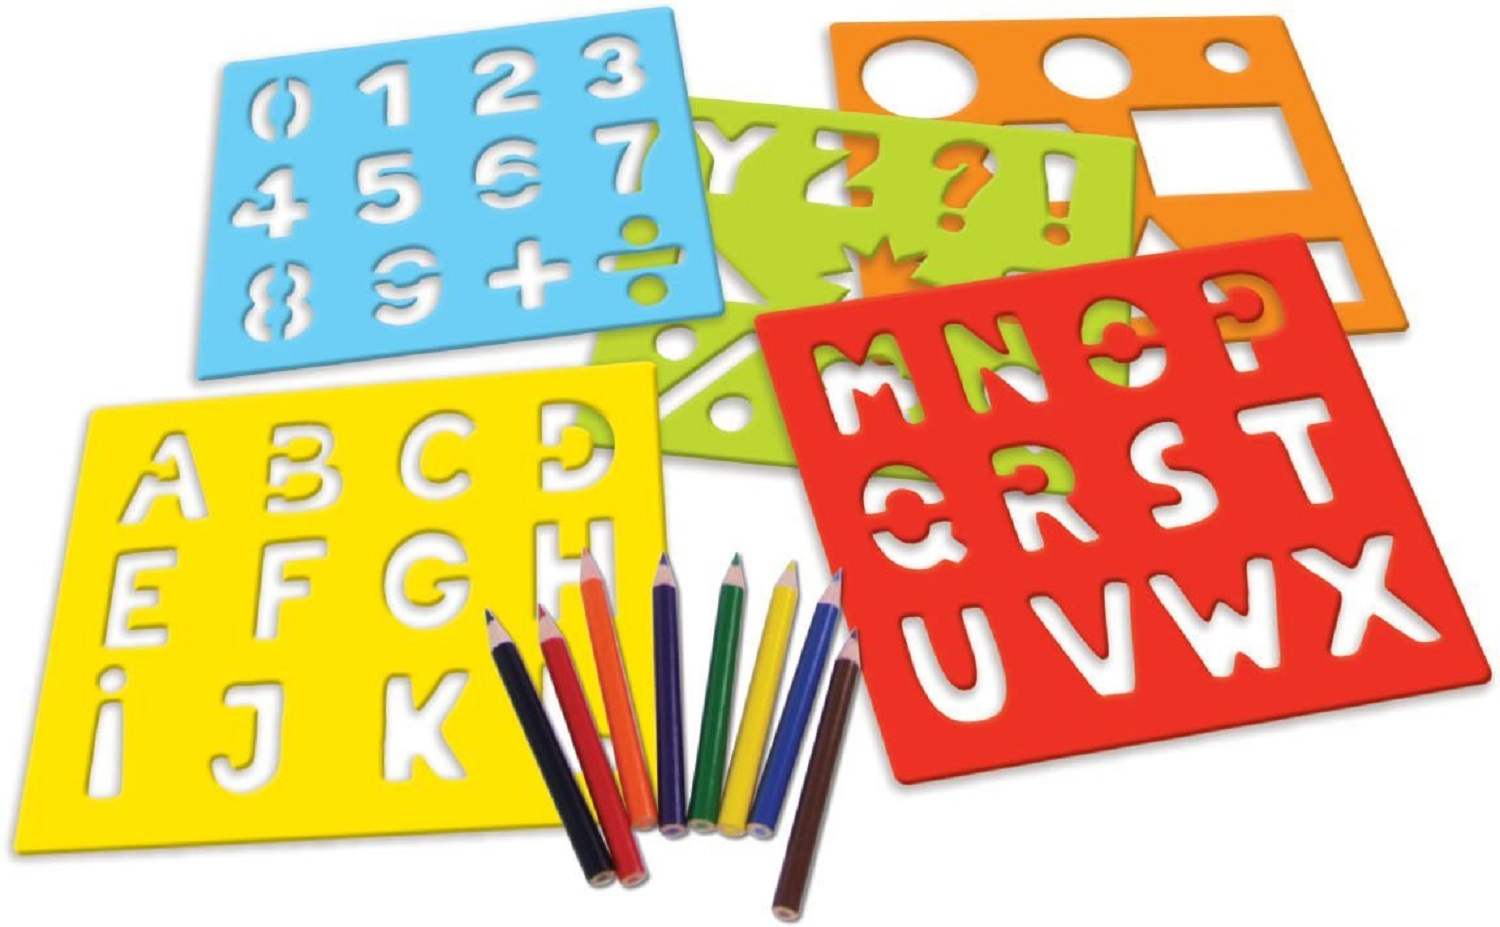 Abc numbers wooden stencils in a suitcase vilac 8218 for Large wooden letter patterns